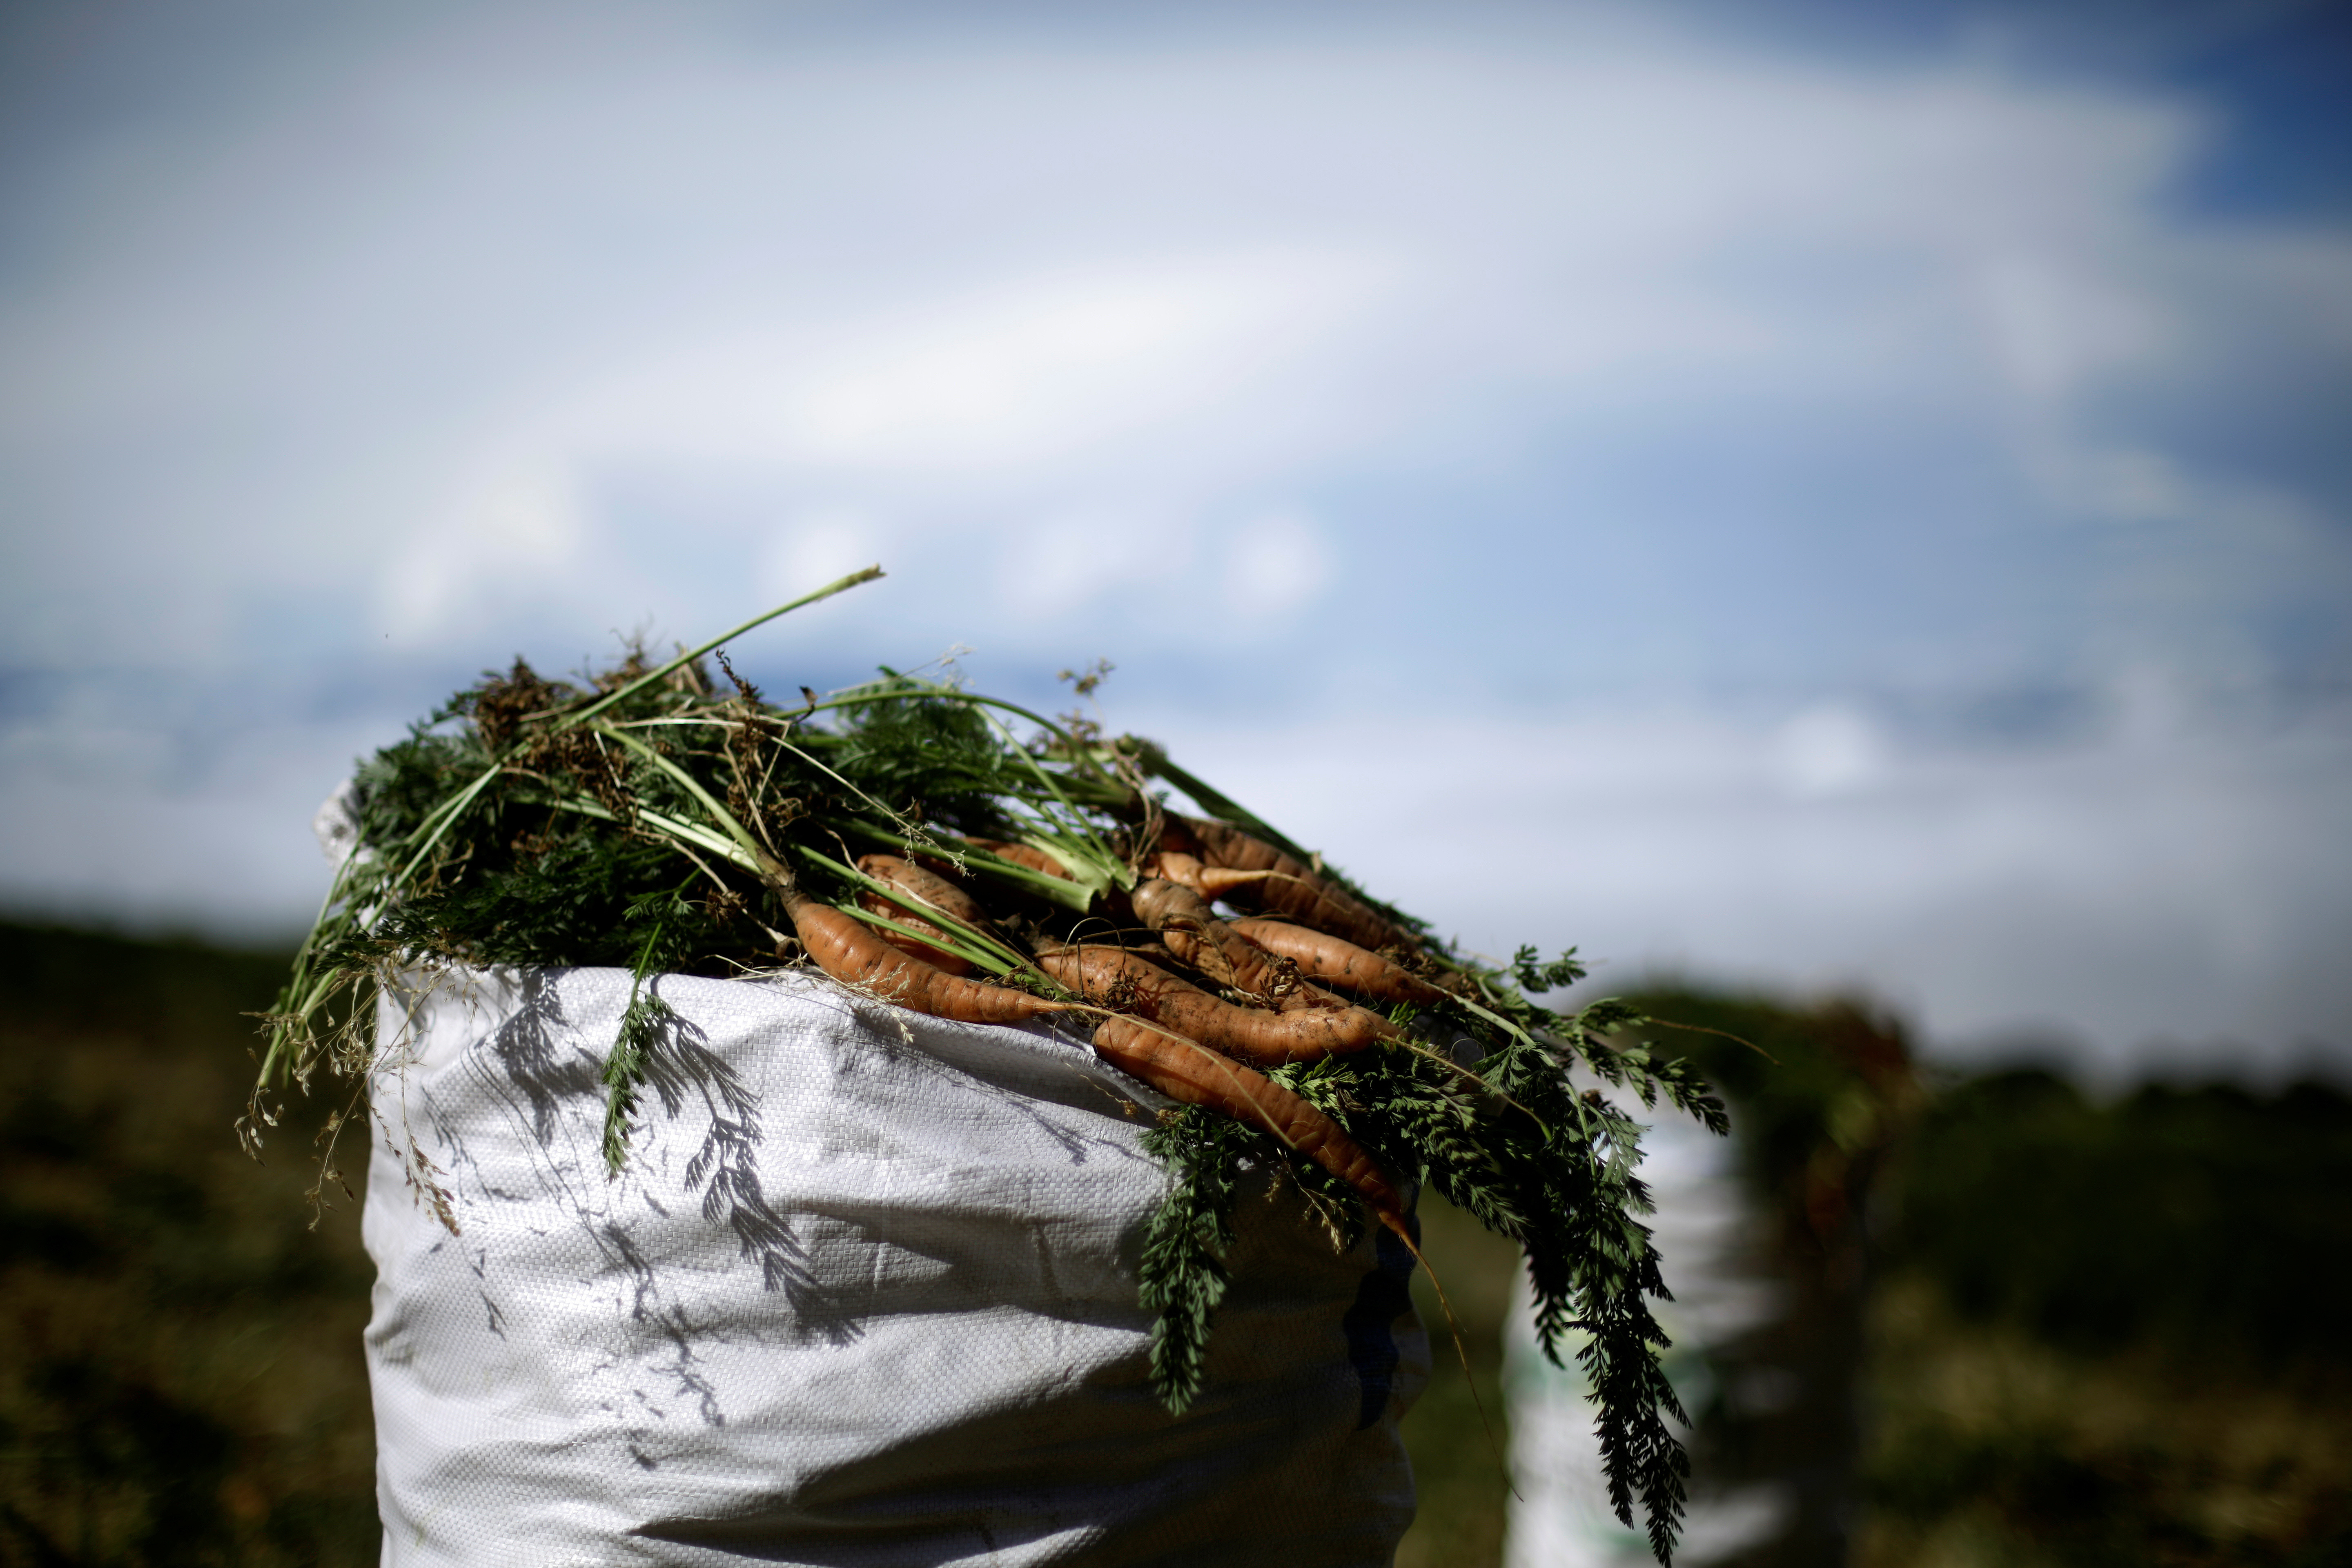 A sack filled with freshly harvested carrots is seen at a plantation in Cartago, Costa Rica April 27, 2018. REUTERS/Juan Carlos Ulate - RC175455EDE0